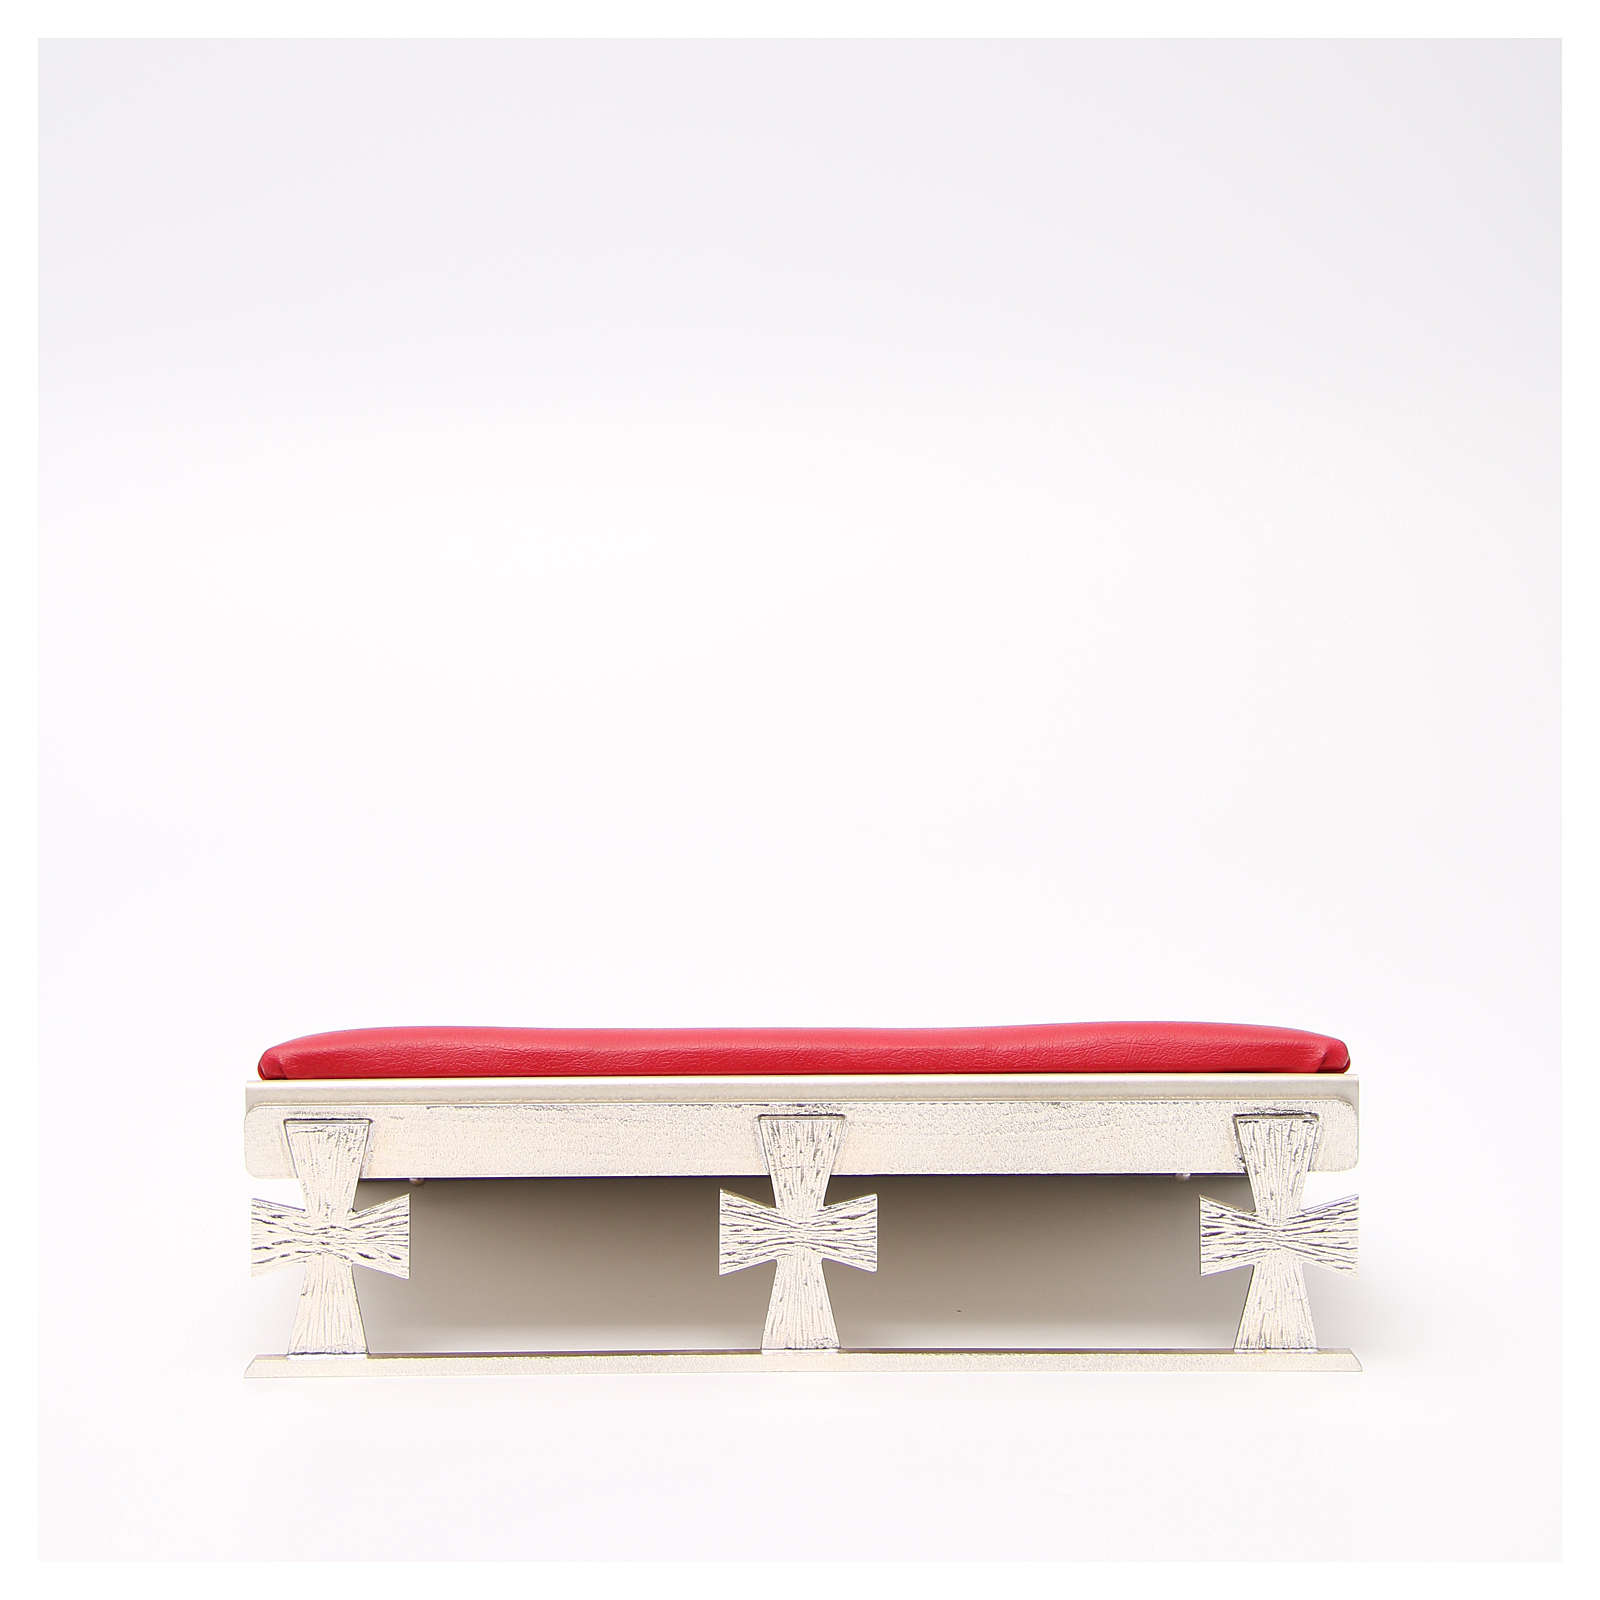 Silver-plated book stand with red cushion 4